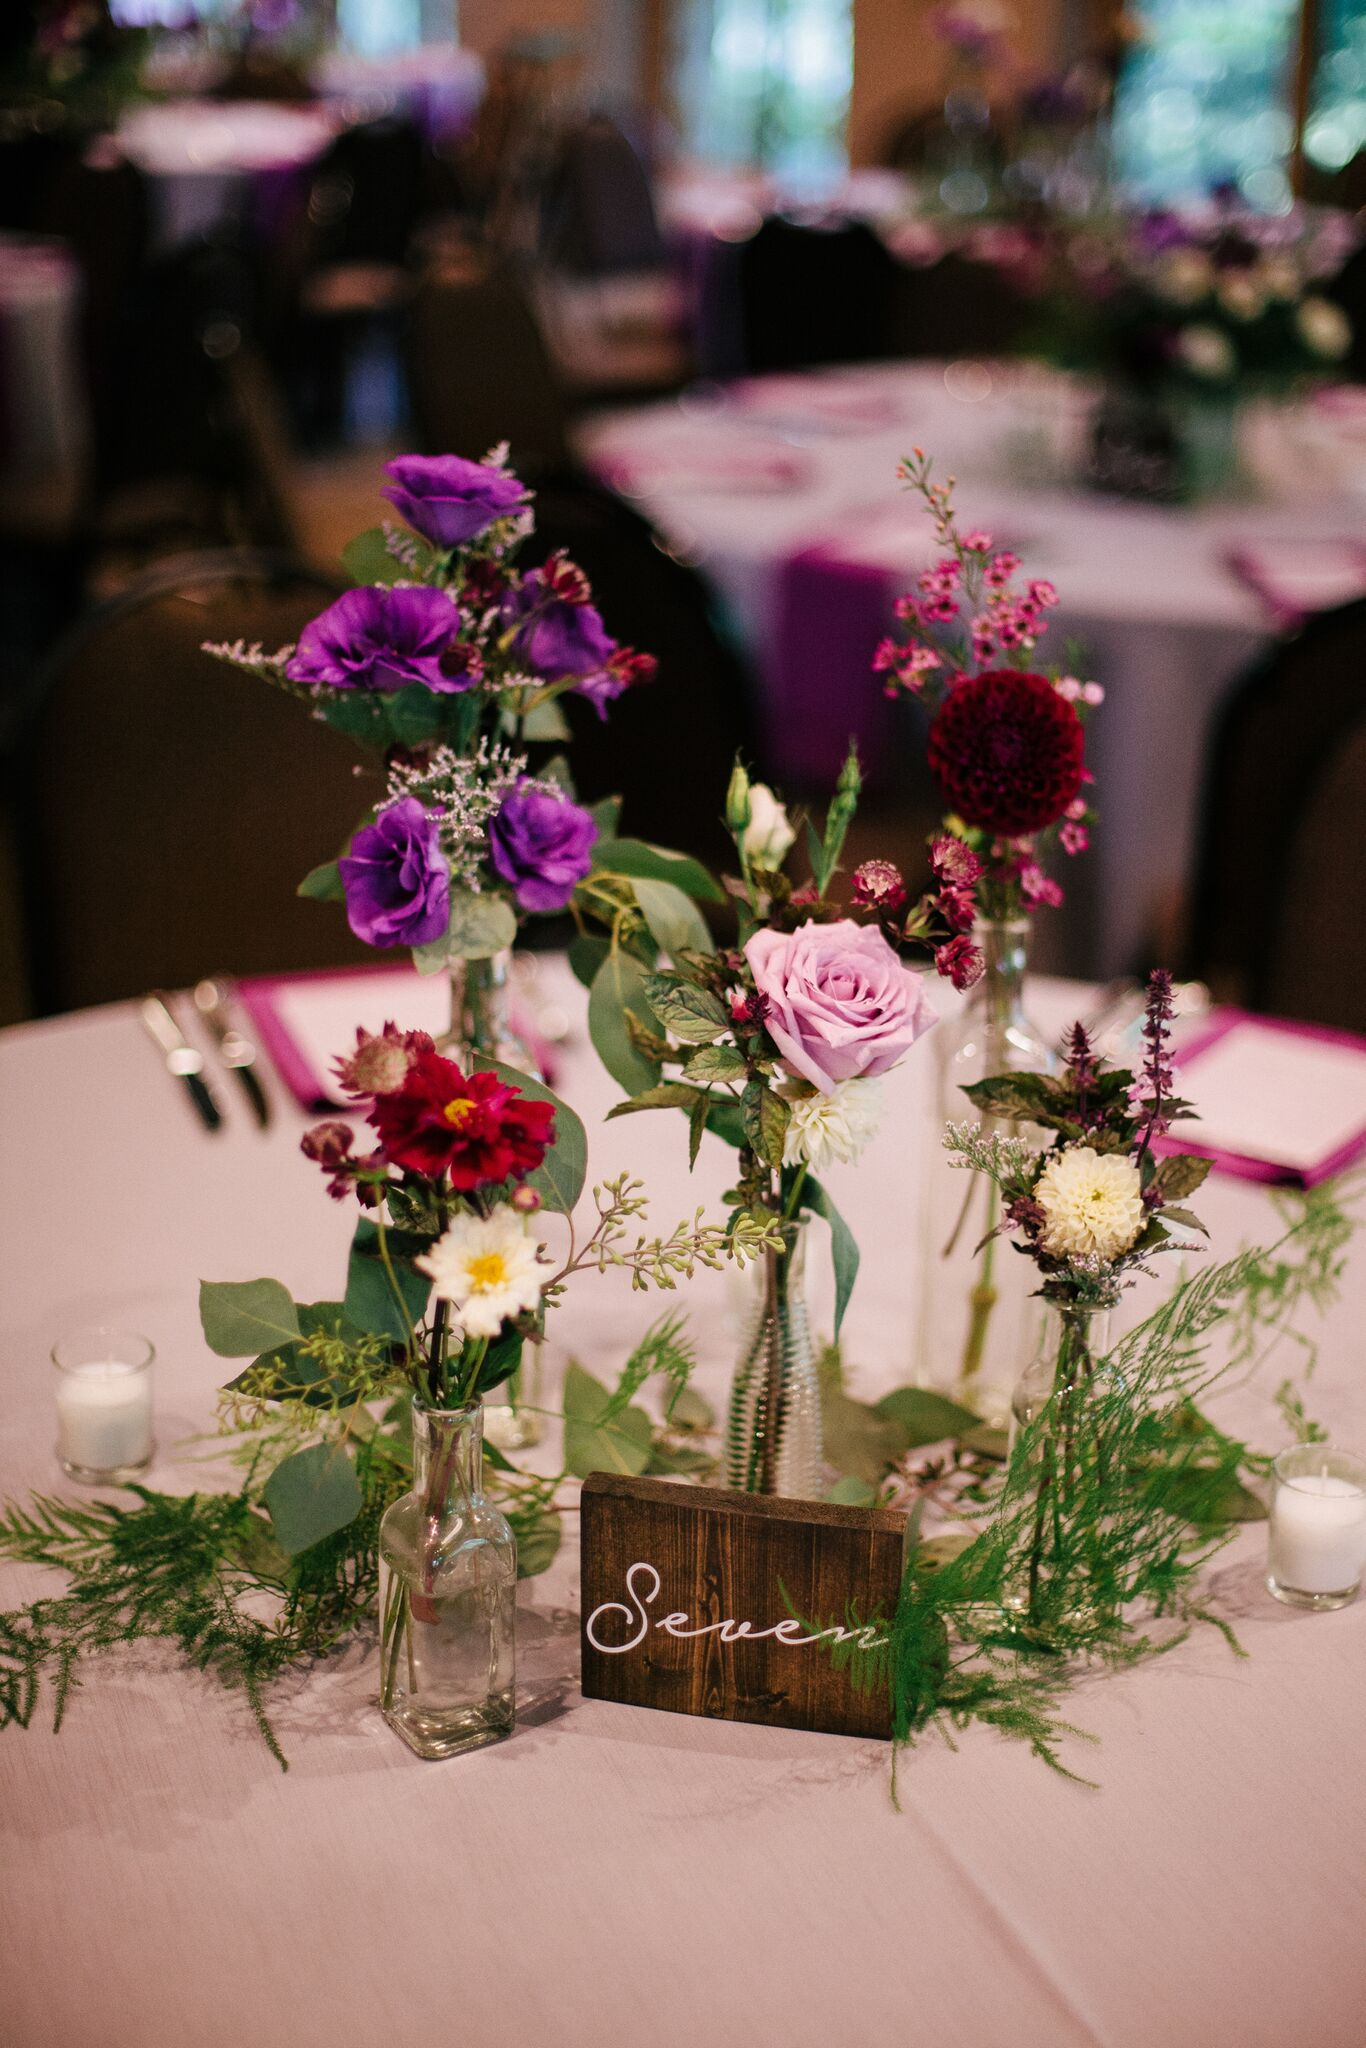 Wedding reception centerpieces in jars